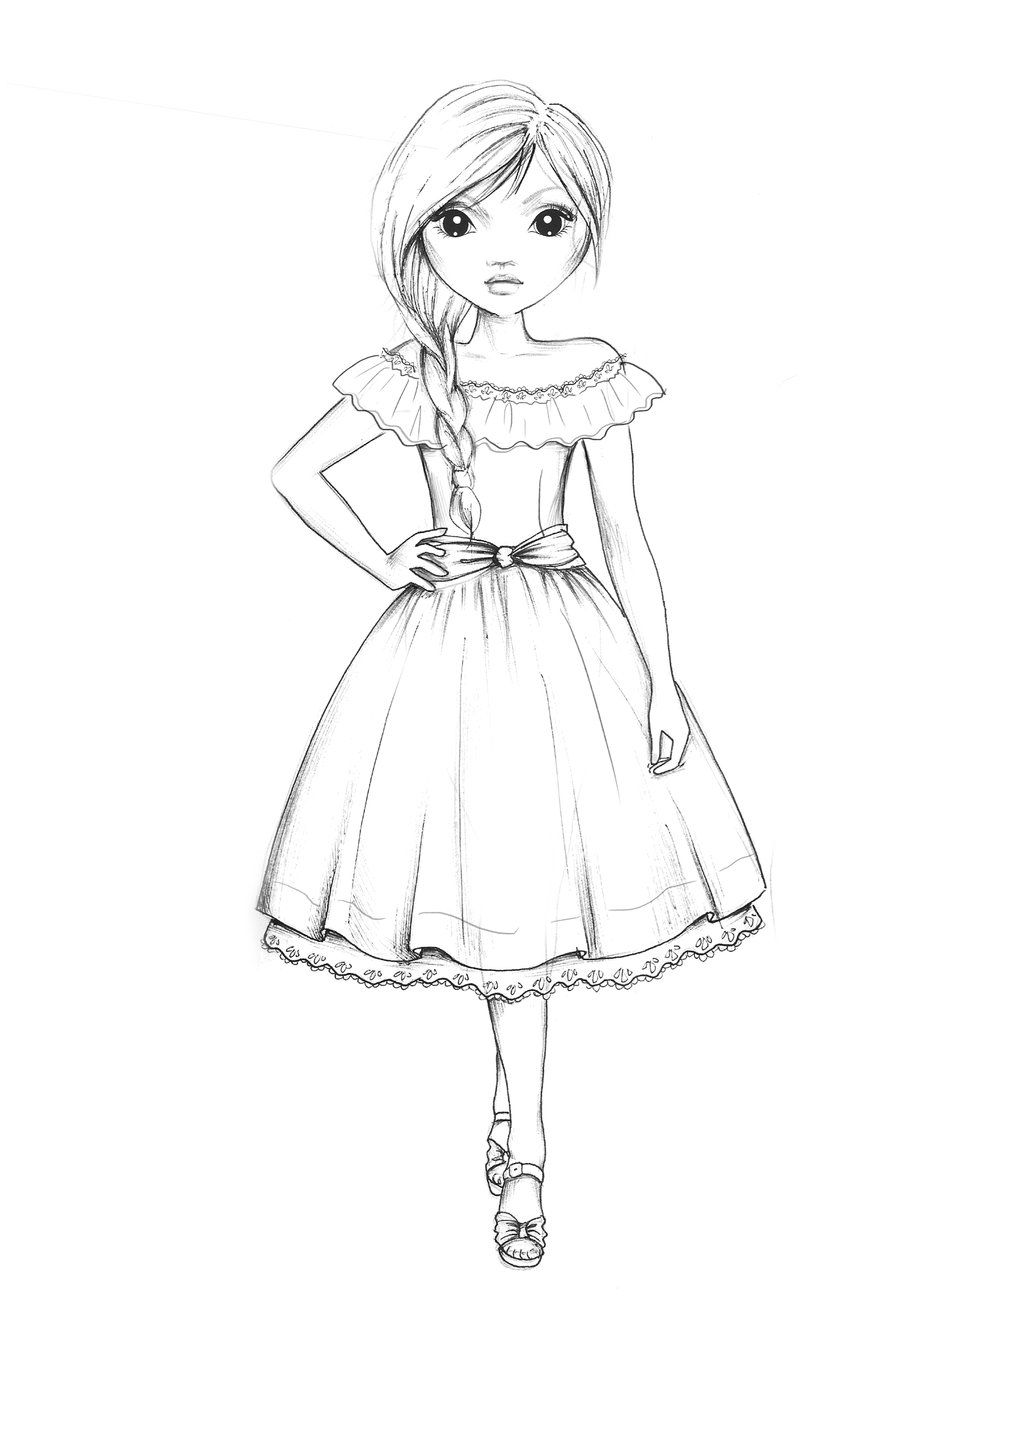 Country style dress outline by funandcake on DeviantArt